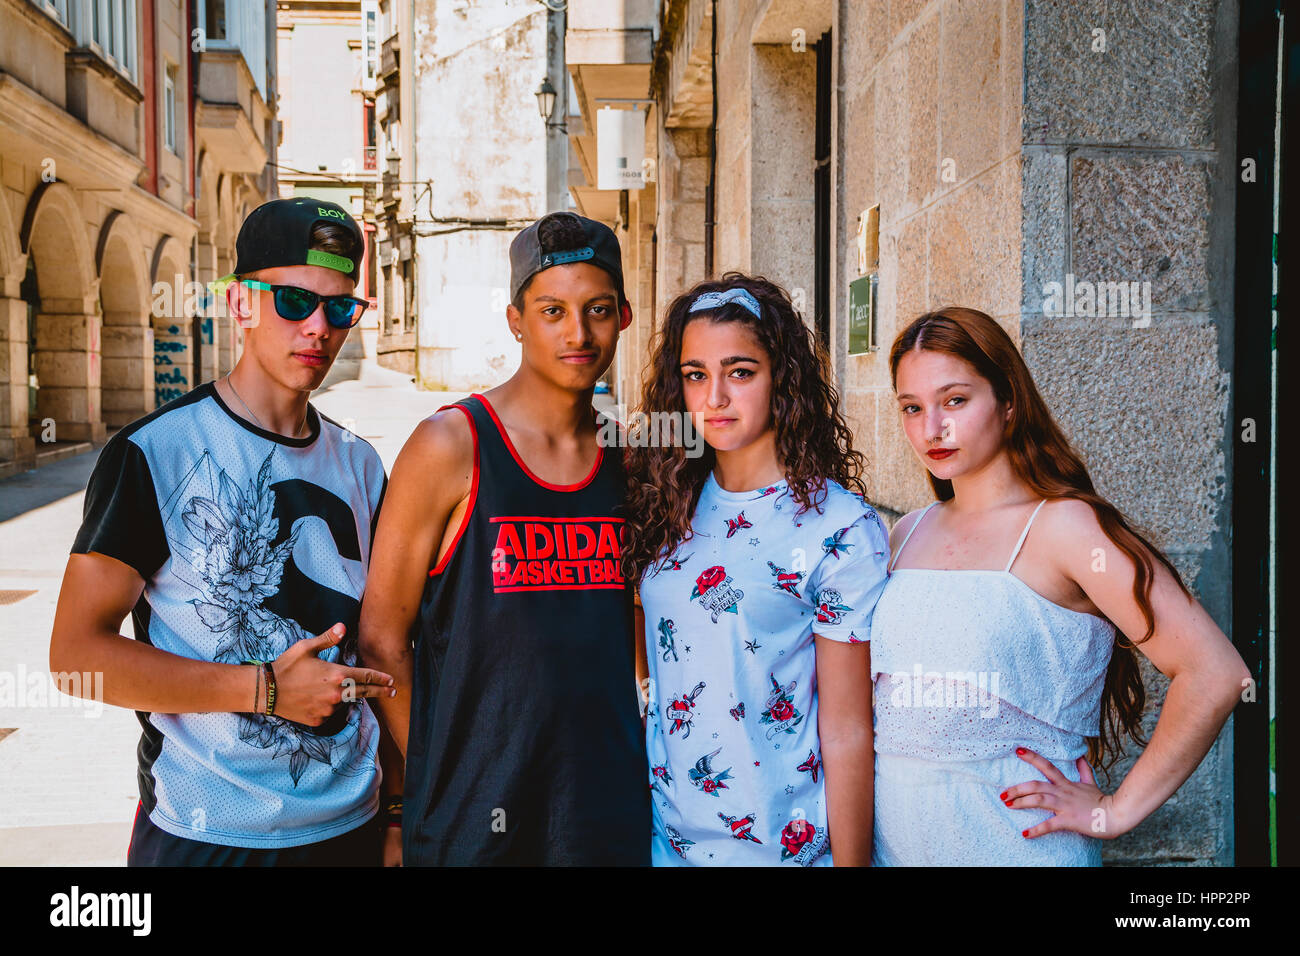 Street Portrait of Group of Young Friends - Stock Image